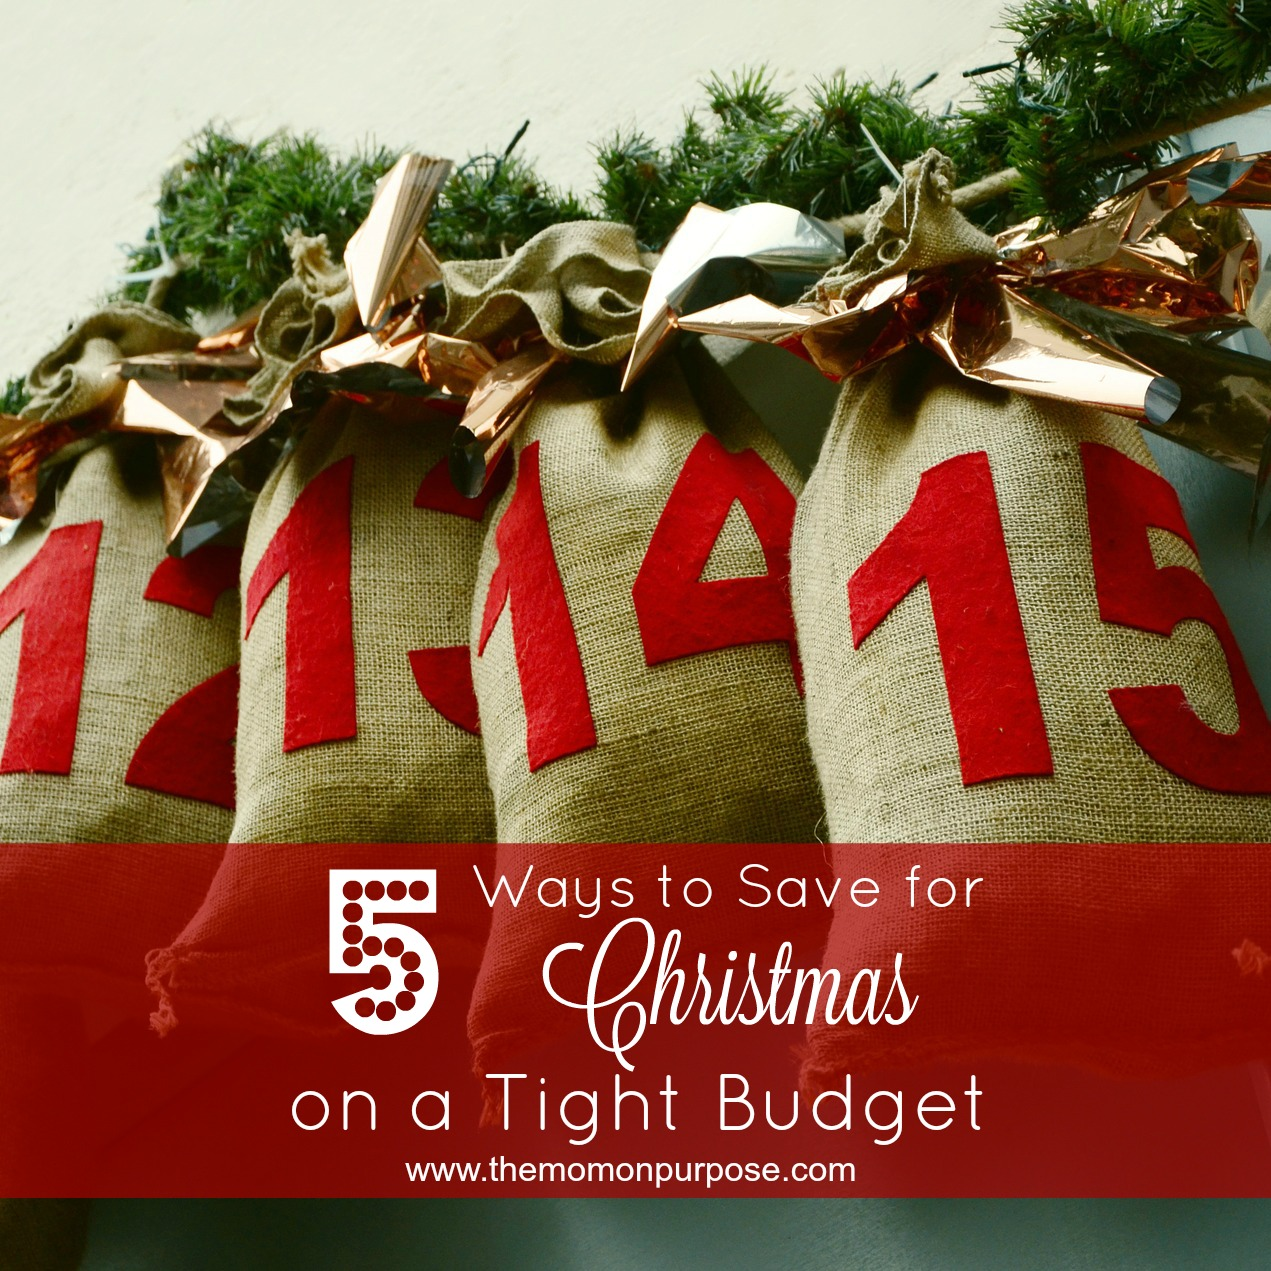 5 ways to save for christmas on a tight budget 3 the simply organized home. Black Bedroom Furniture Sets. Home Design Ideas